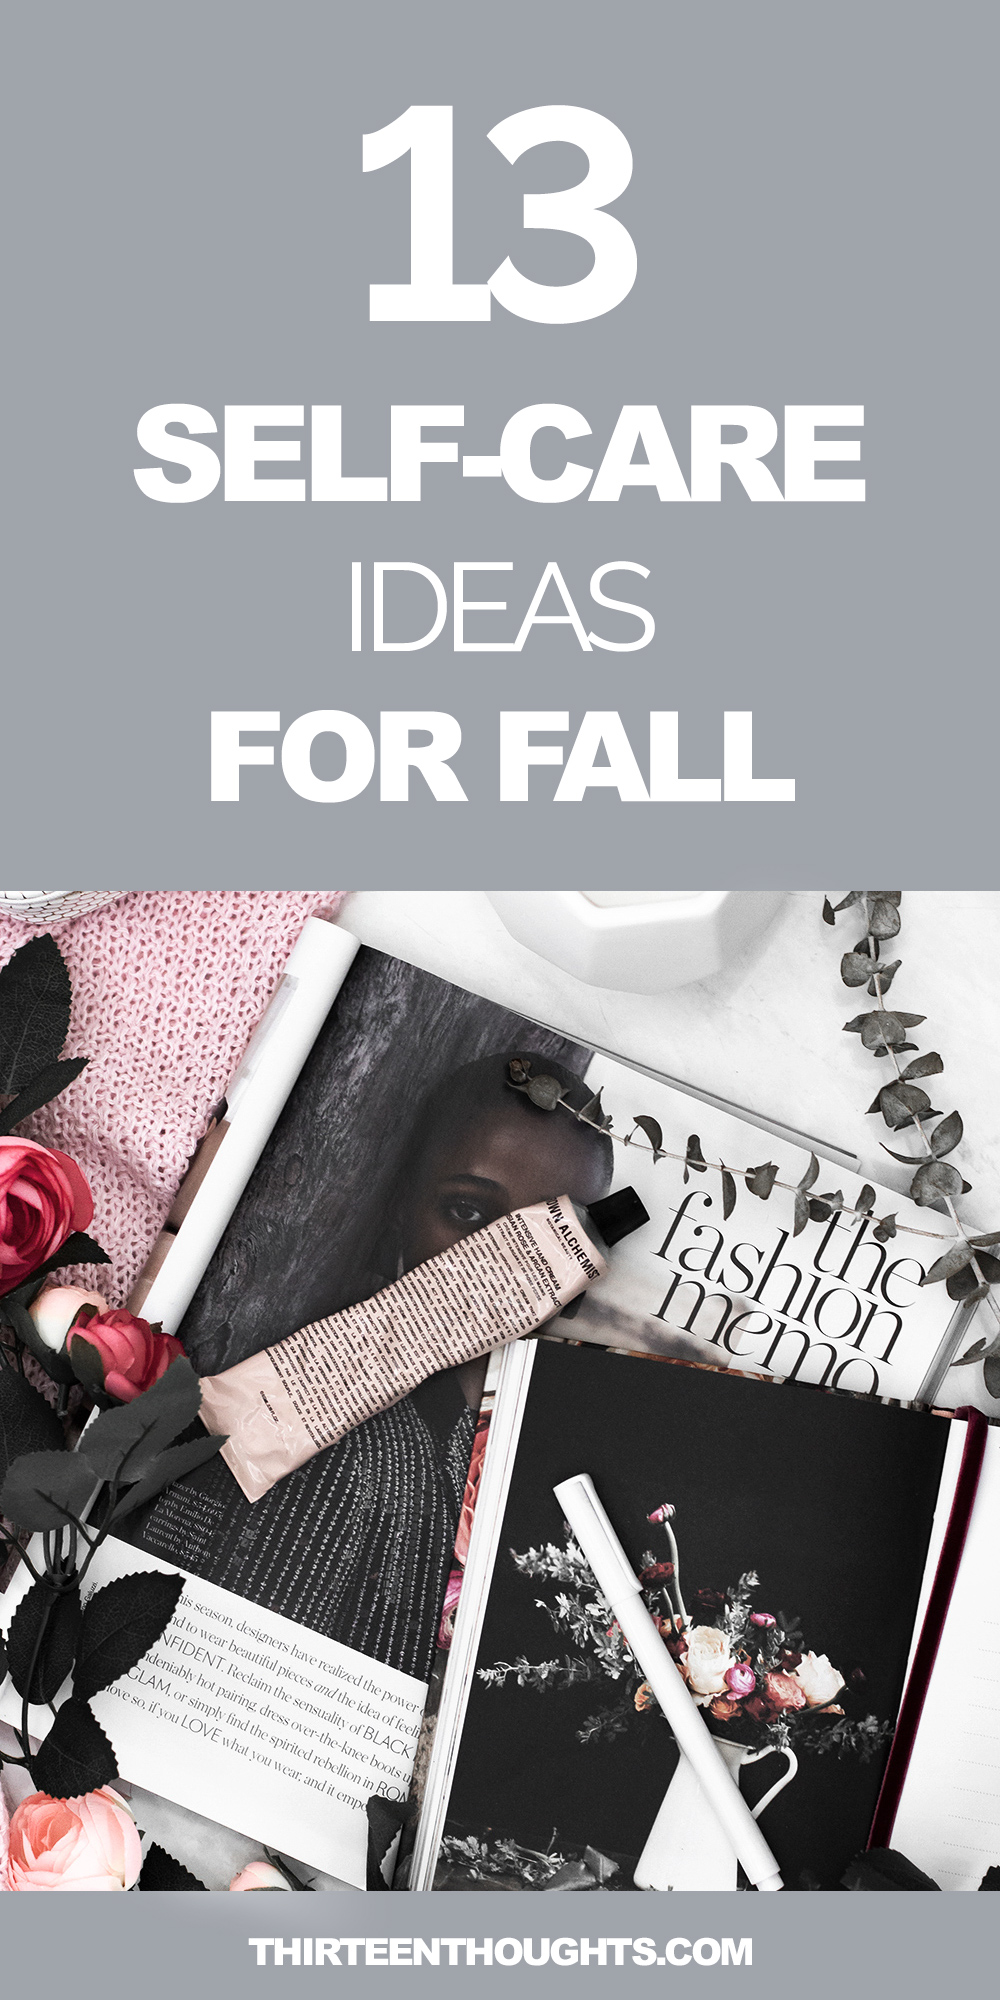 Fall Self-Care Ideas